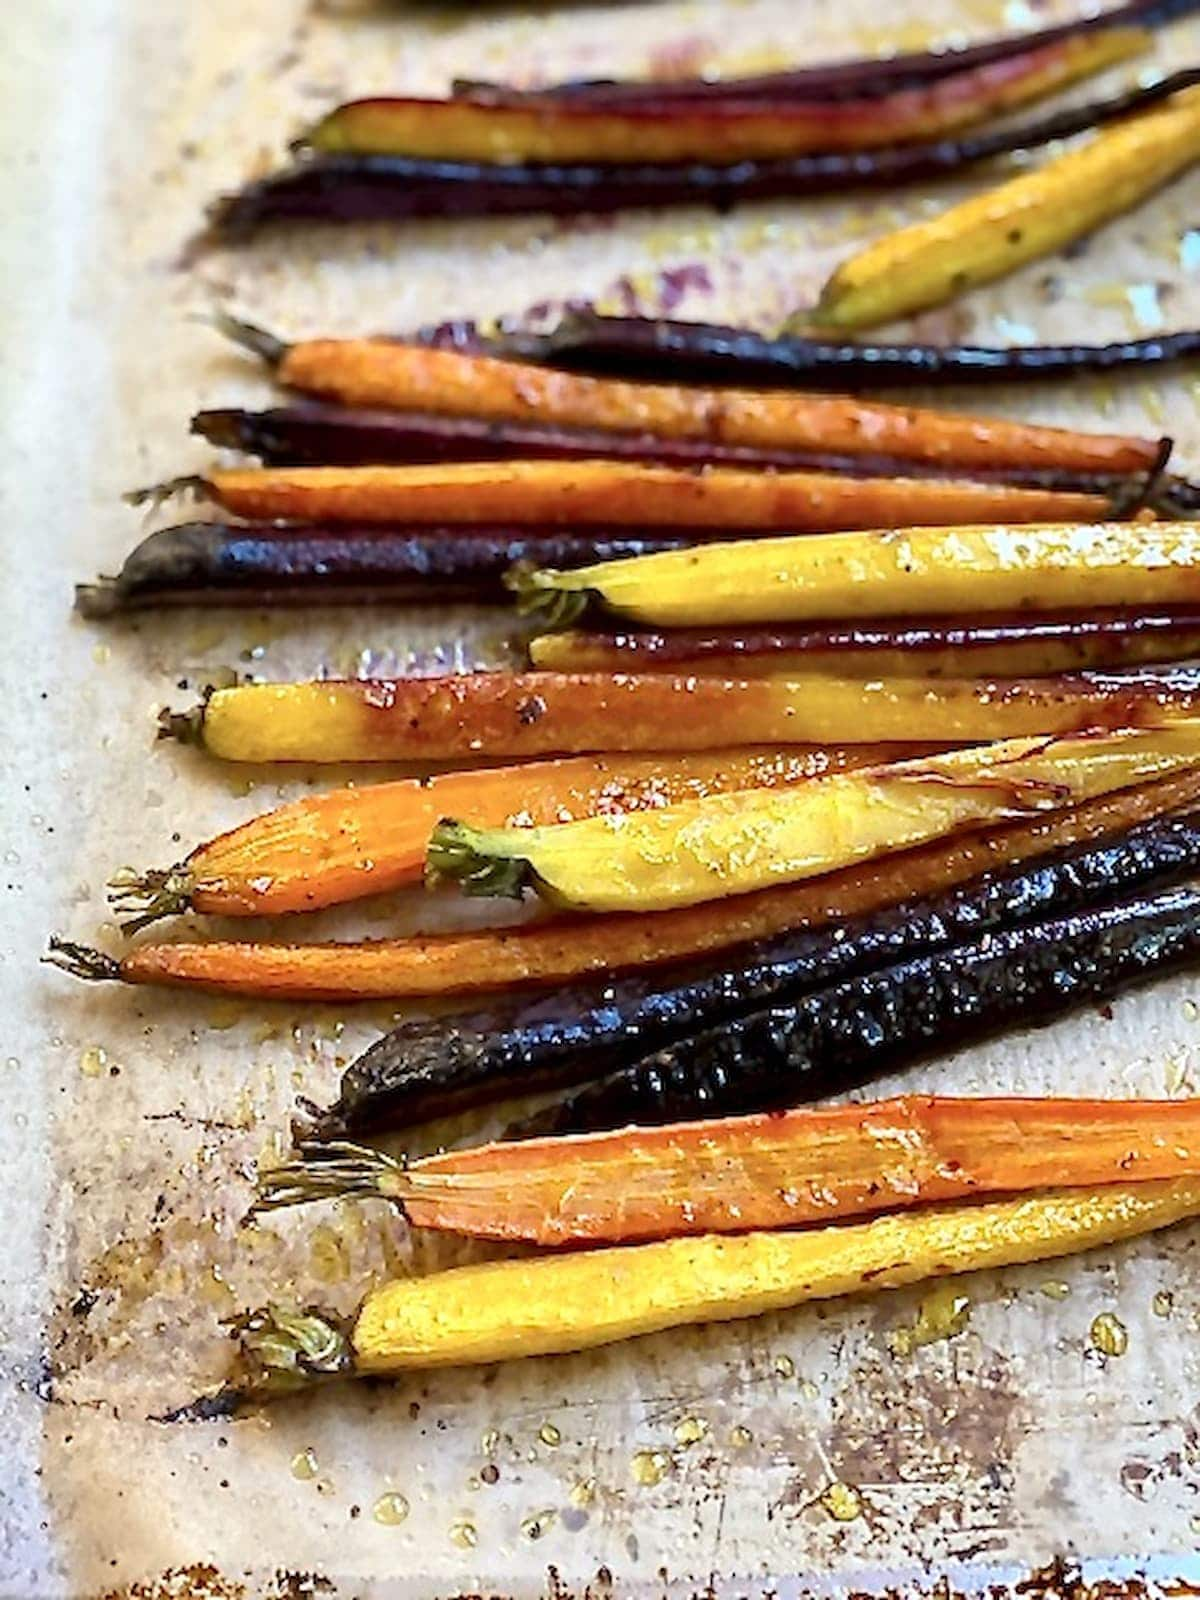 roasted carrots of different colors right out of the oven on a baking sheet.